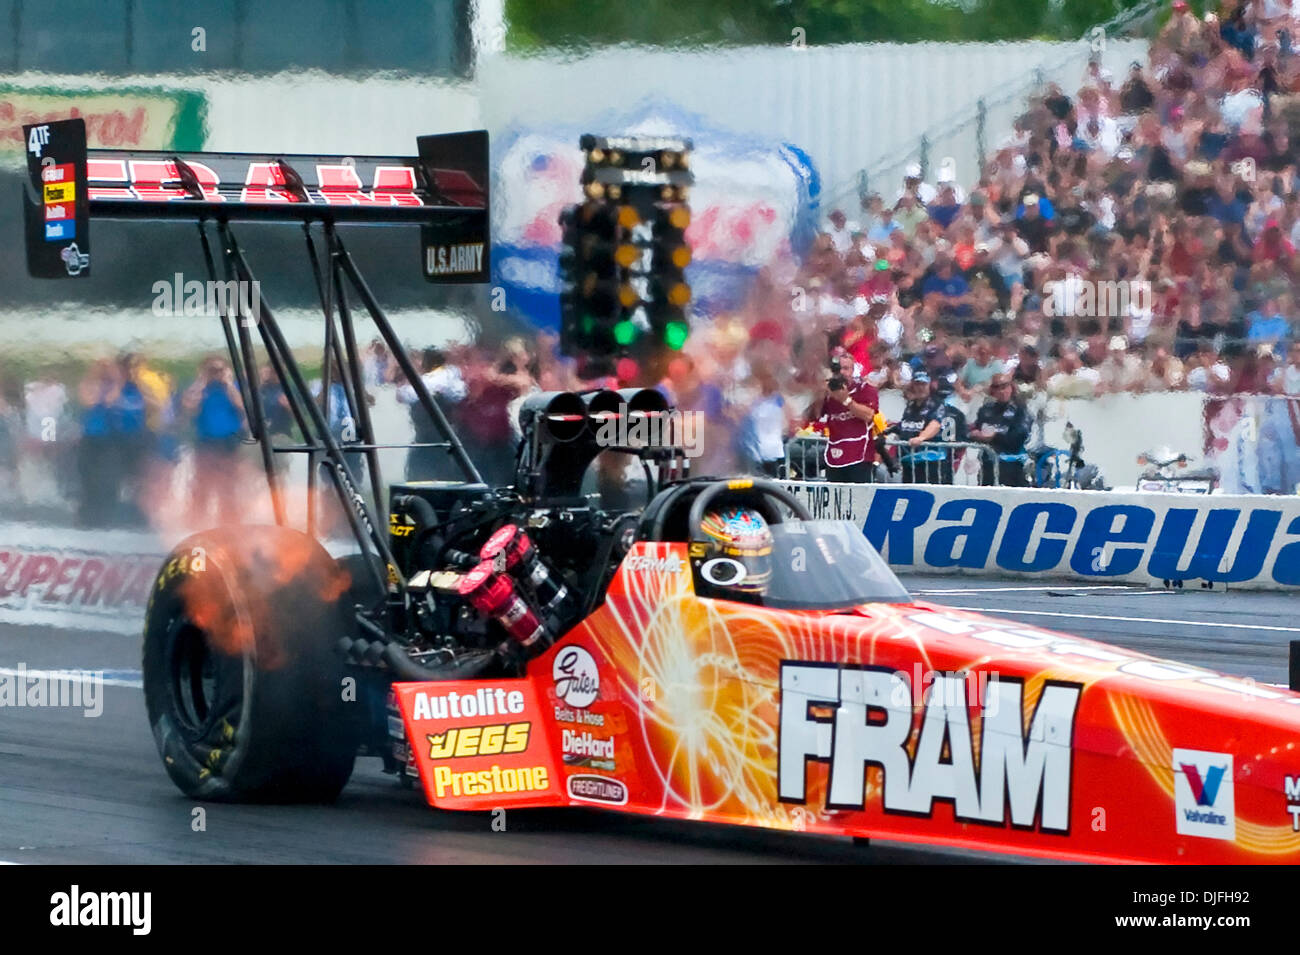 Cory Mcclenathan in the Fram Dragster during the Top Fuel qualifying at the  2010 NHRA SuperNationals